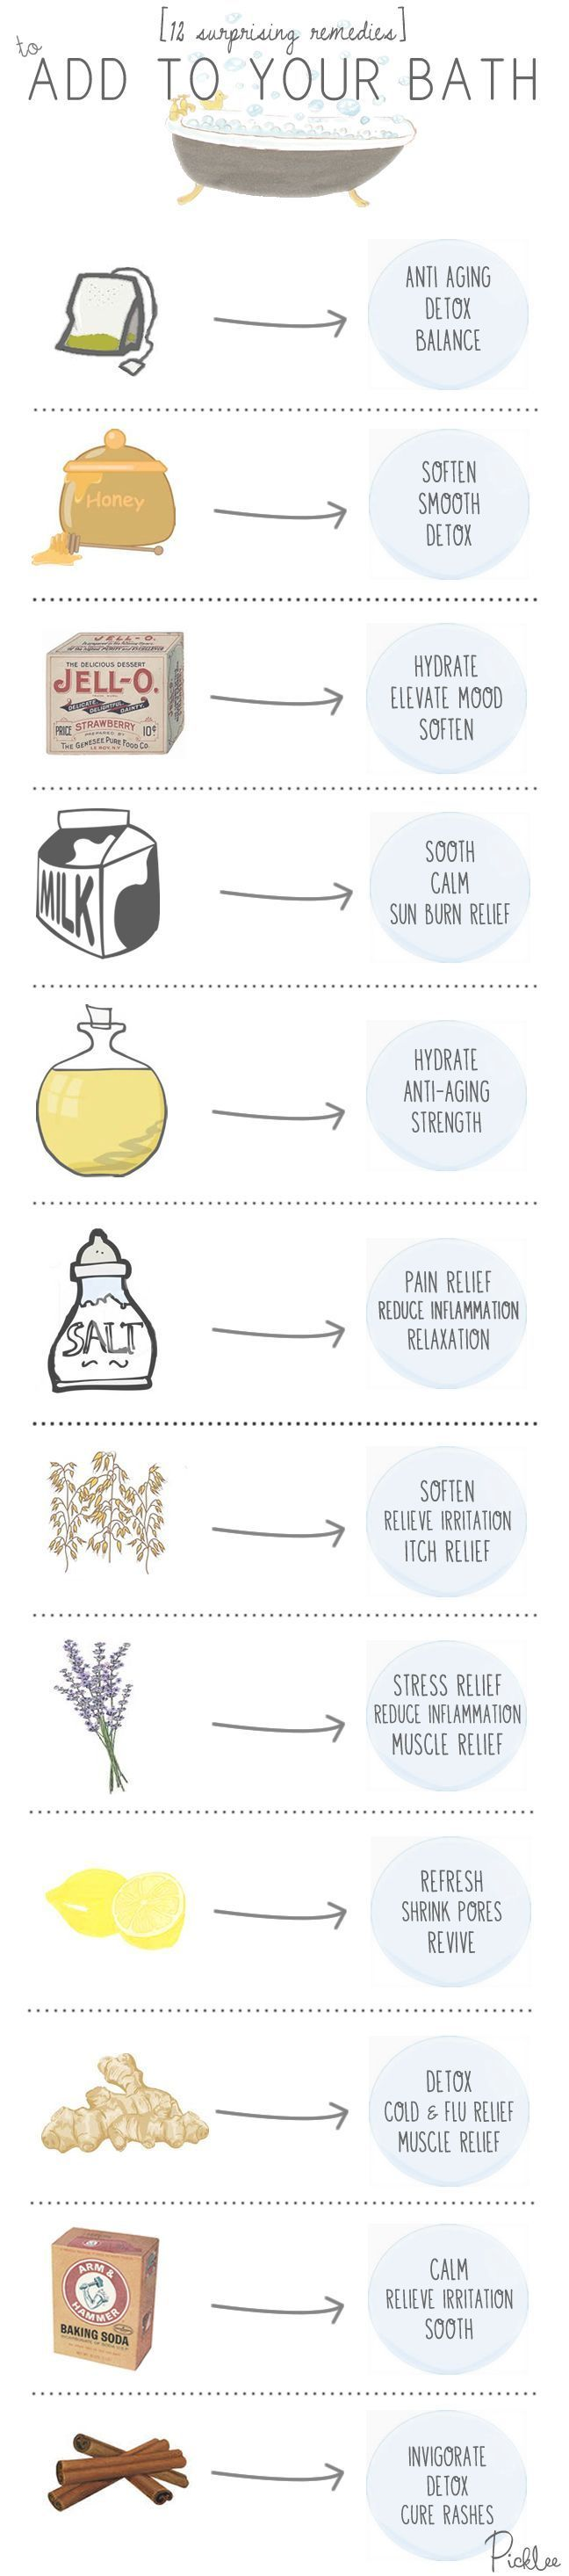 12 Everyday Ingredients to turn your Bath into a Home Spa #healthy #relax